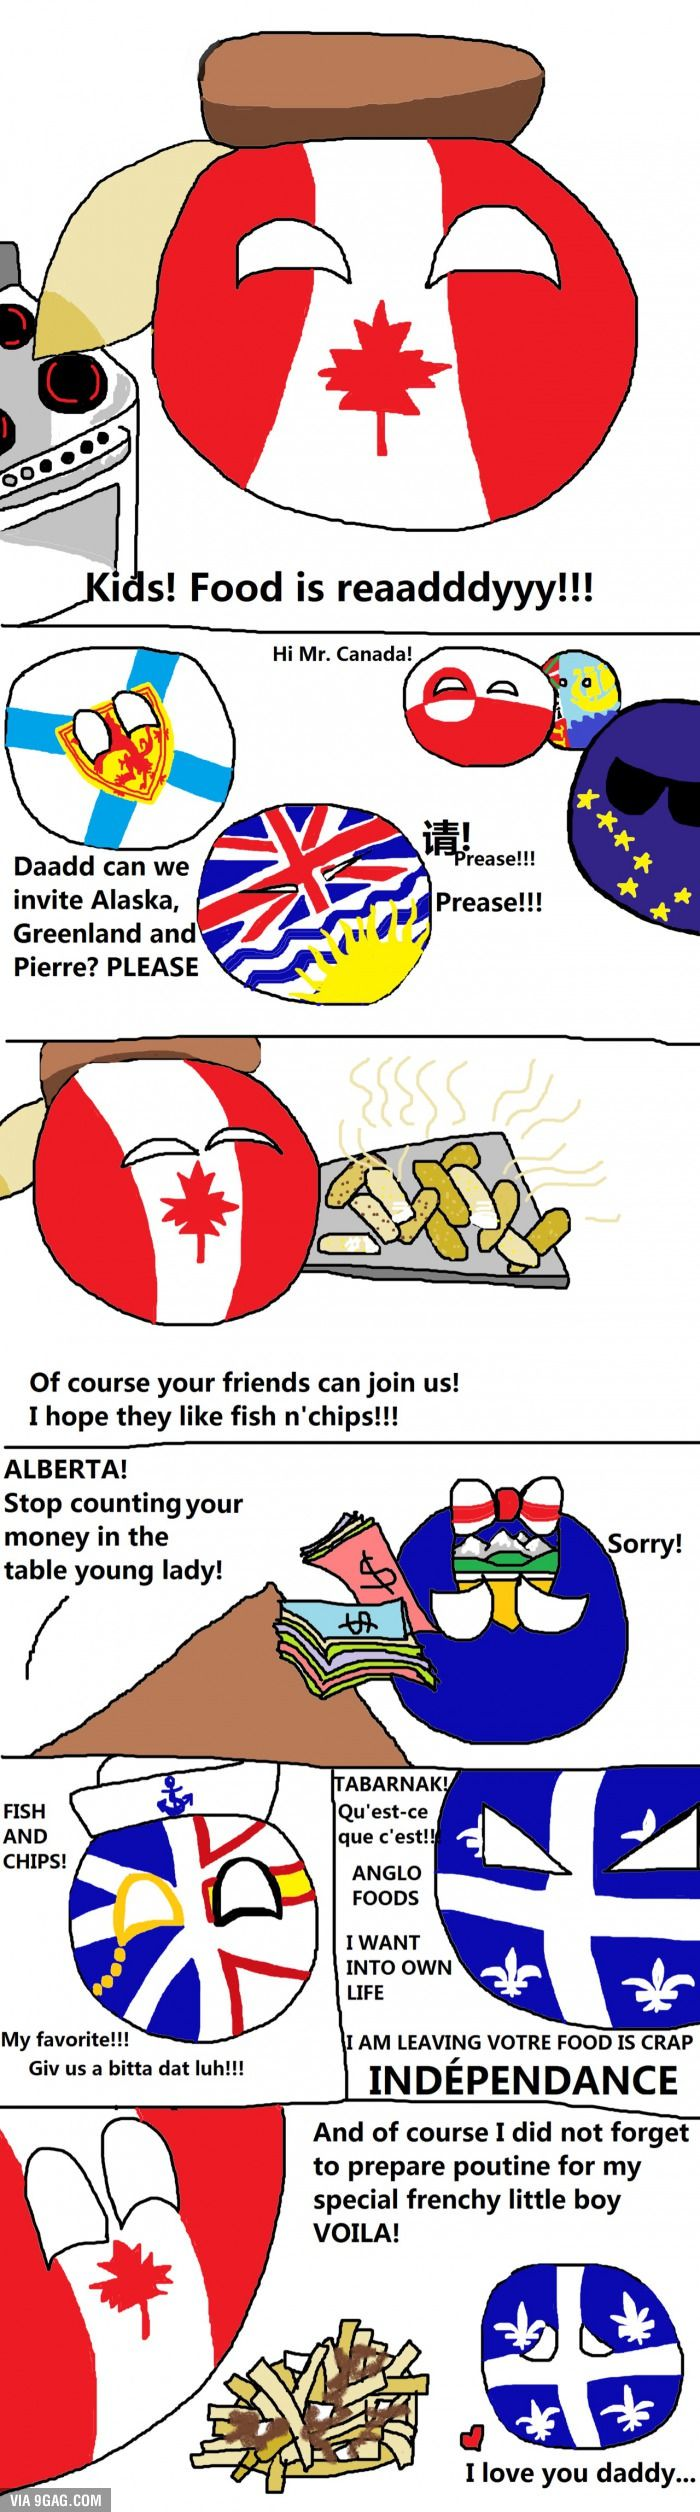 Dinner time with Canada! Canada jokes, Canada funny